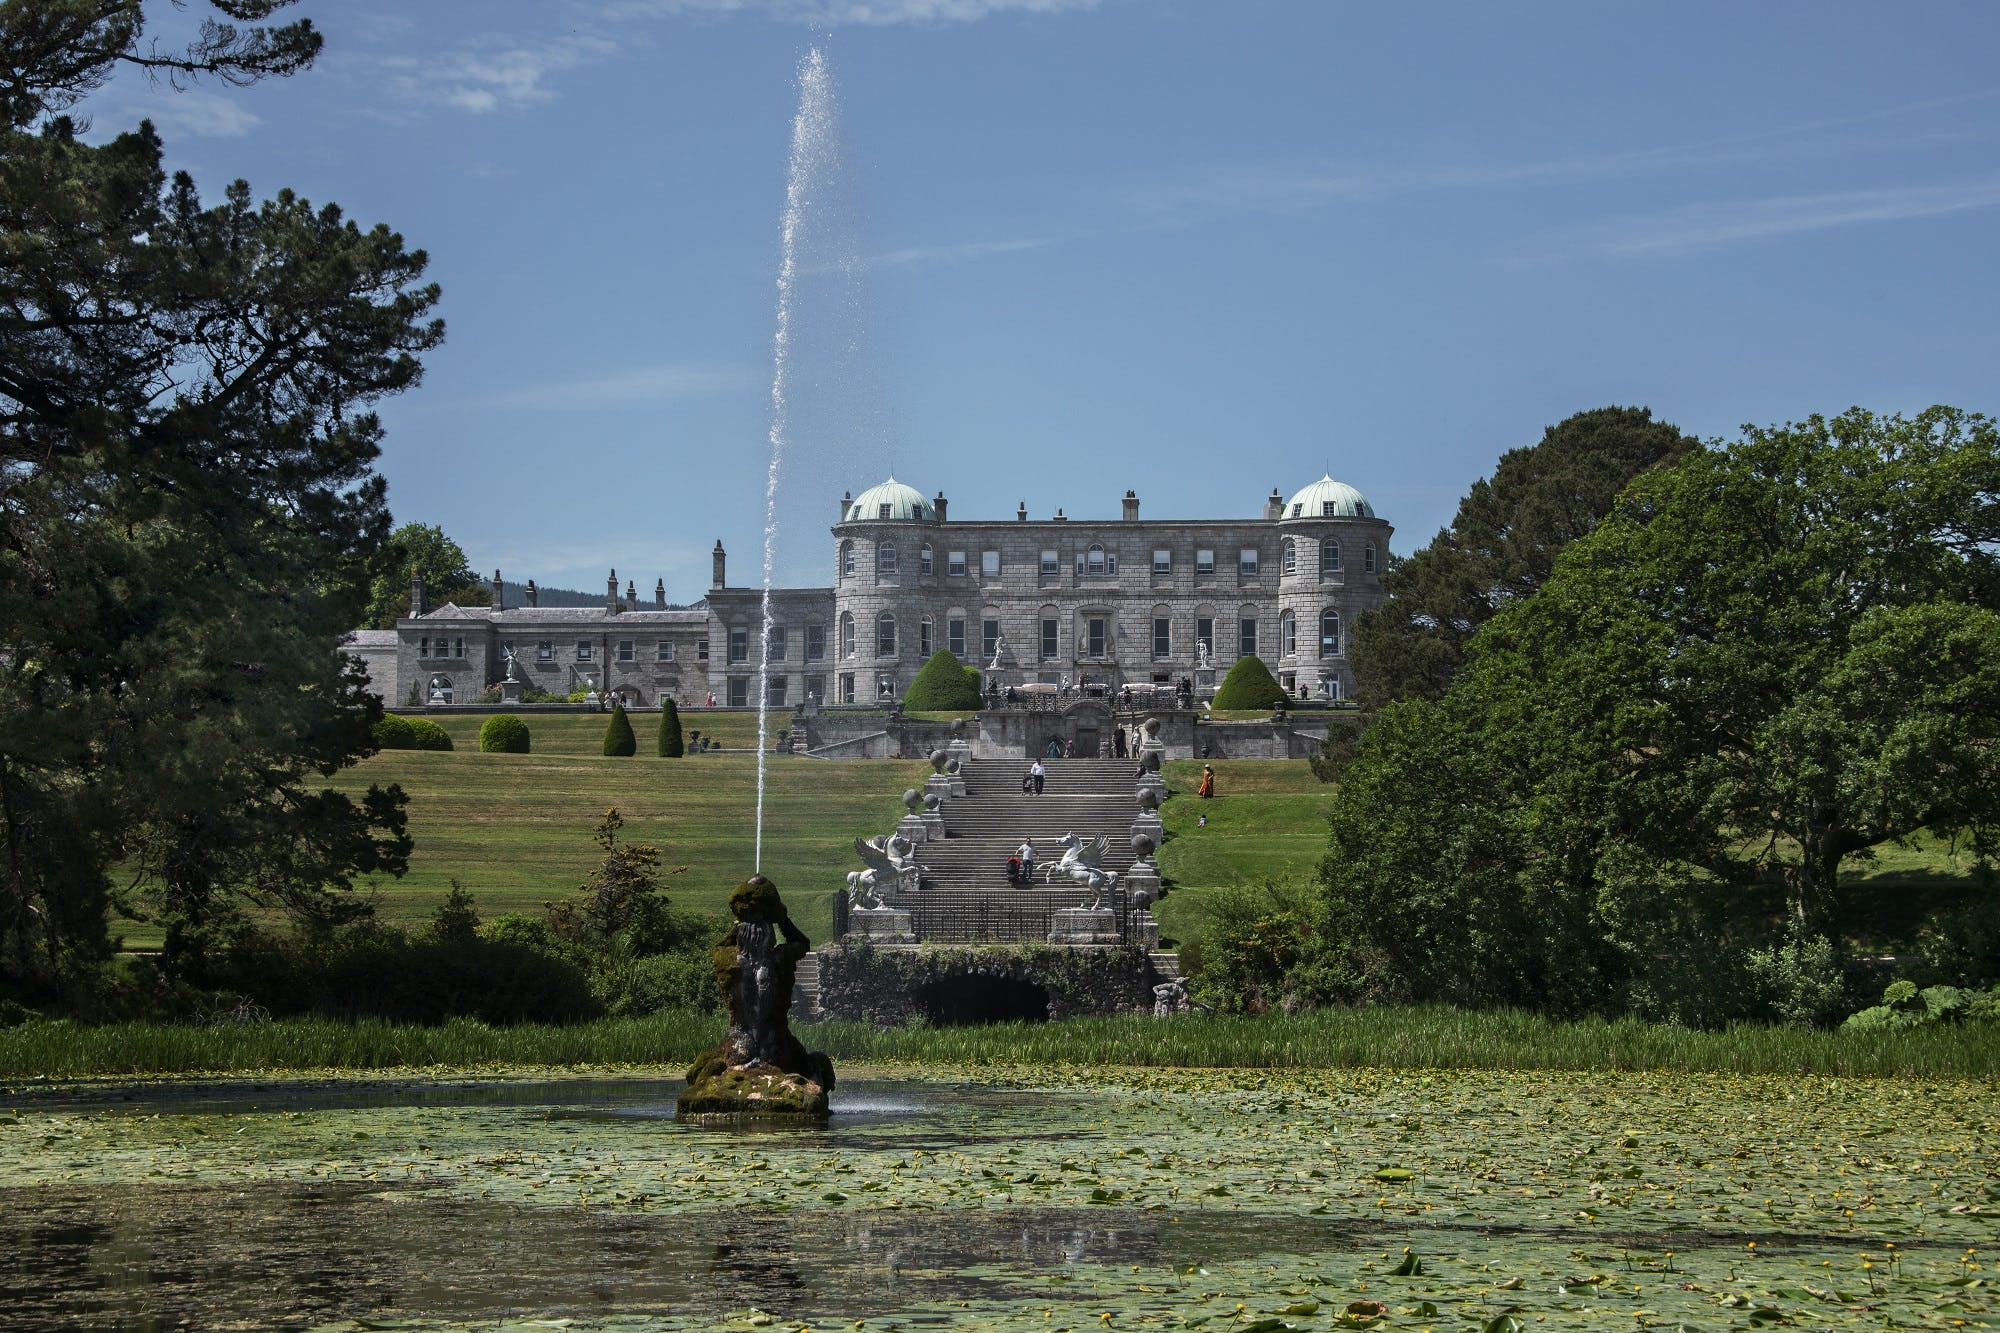 Facade at Powerscourt, Enniskerry, Ireland by Steve McCurry